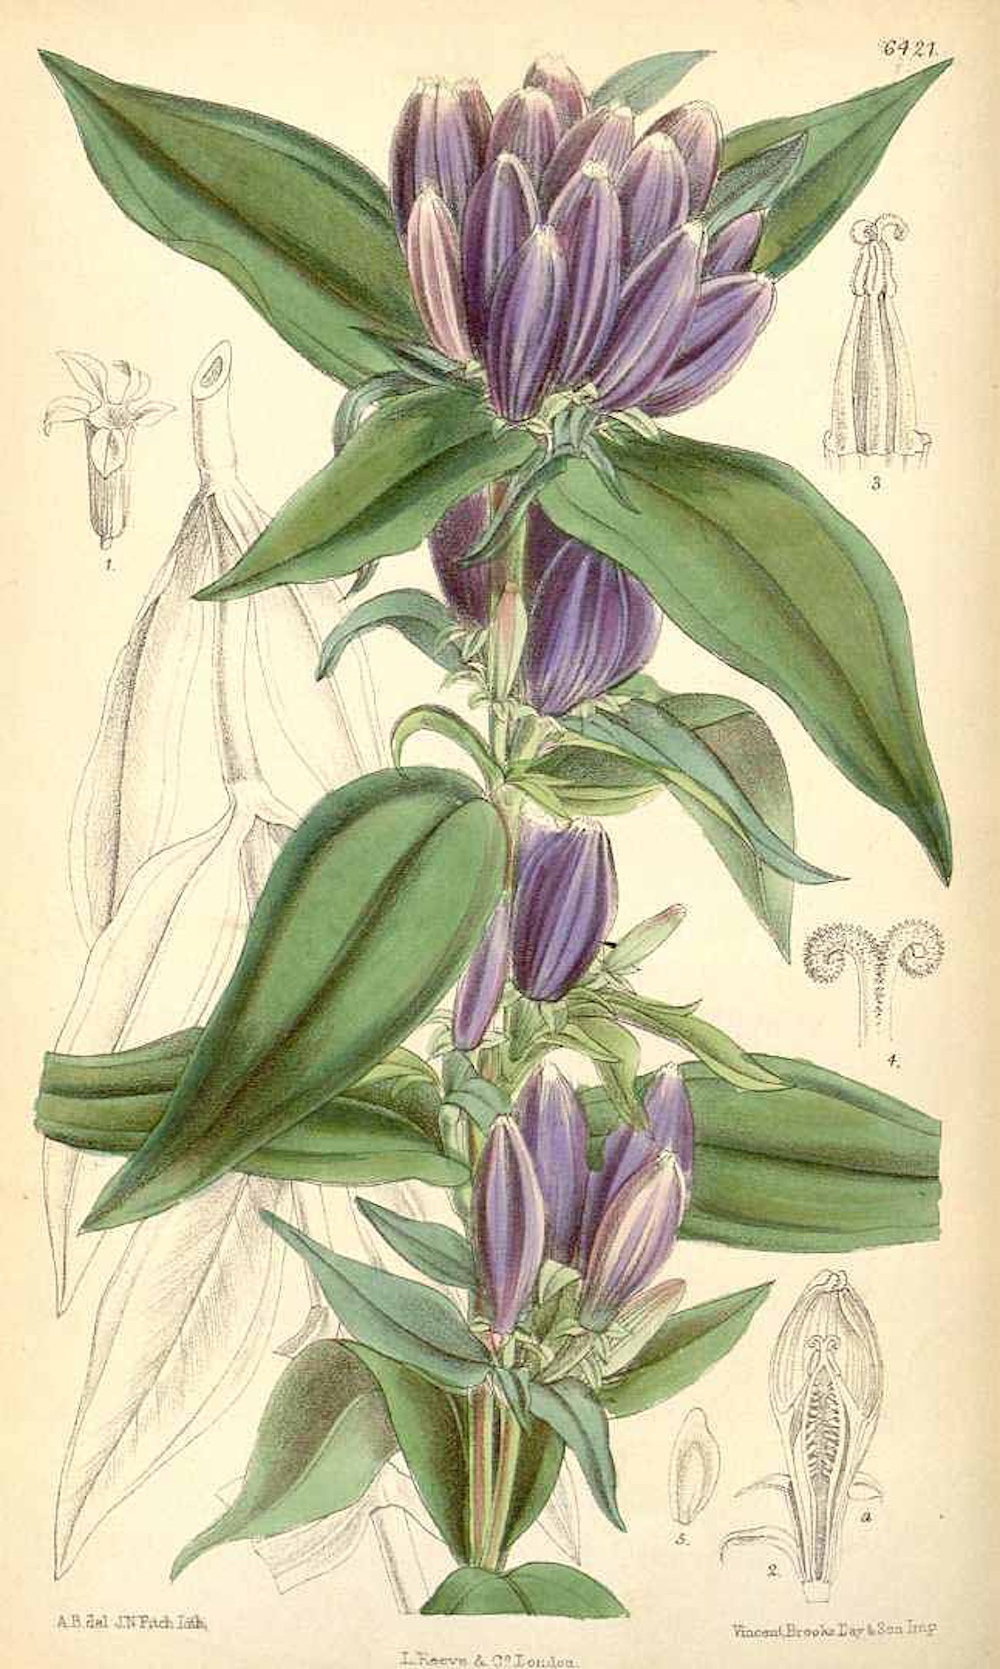 Closed Gentian botanical illustration circa 1879.